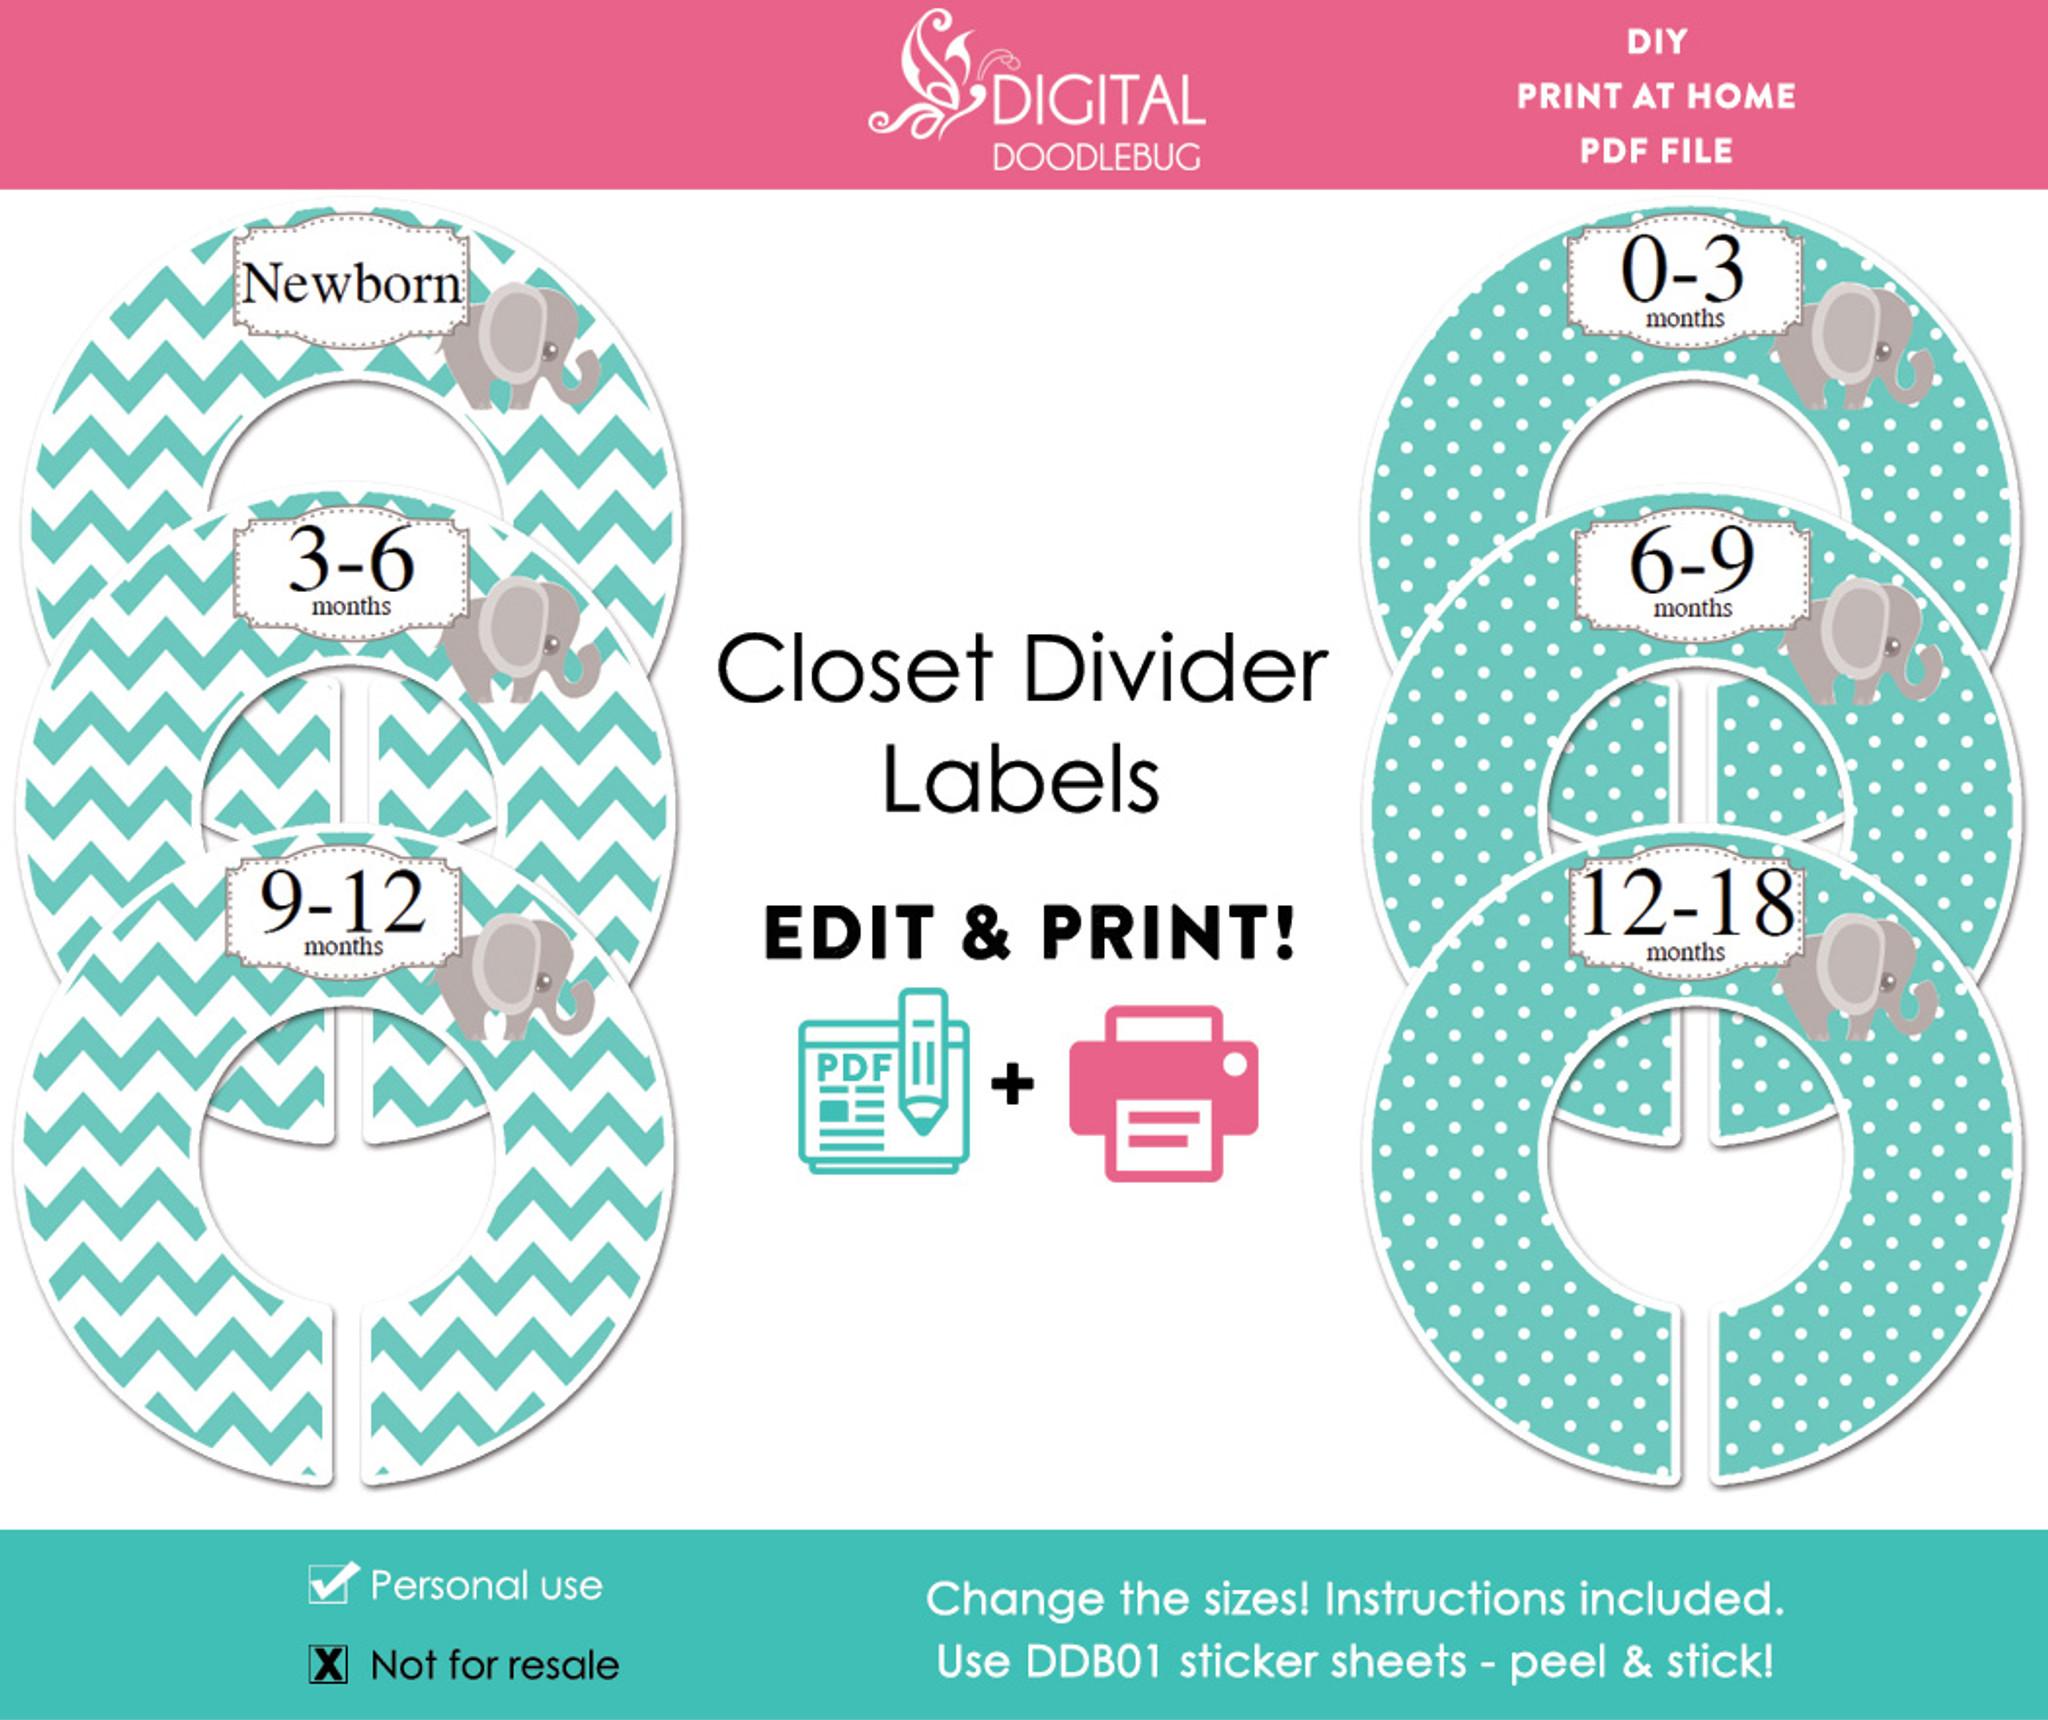 picture about Printable Closet Dividers identified as Turquoise Elephant Printable Closet Dividers